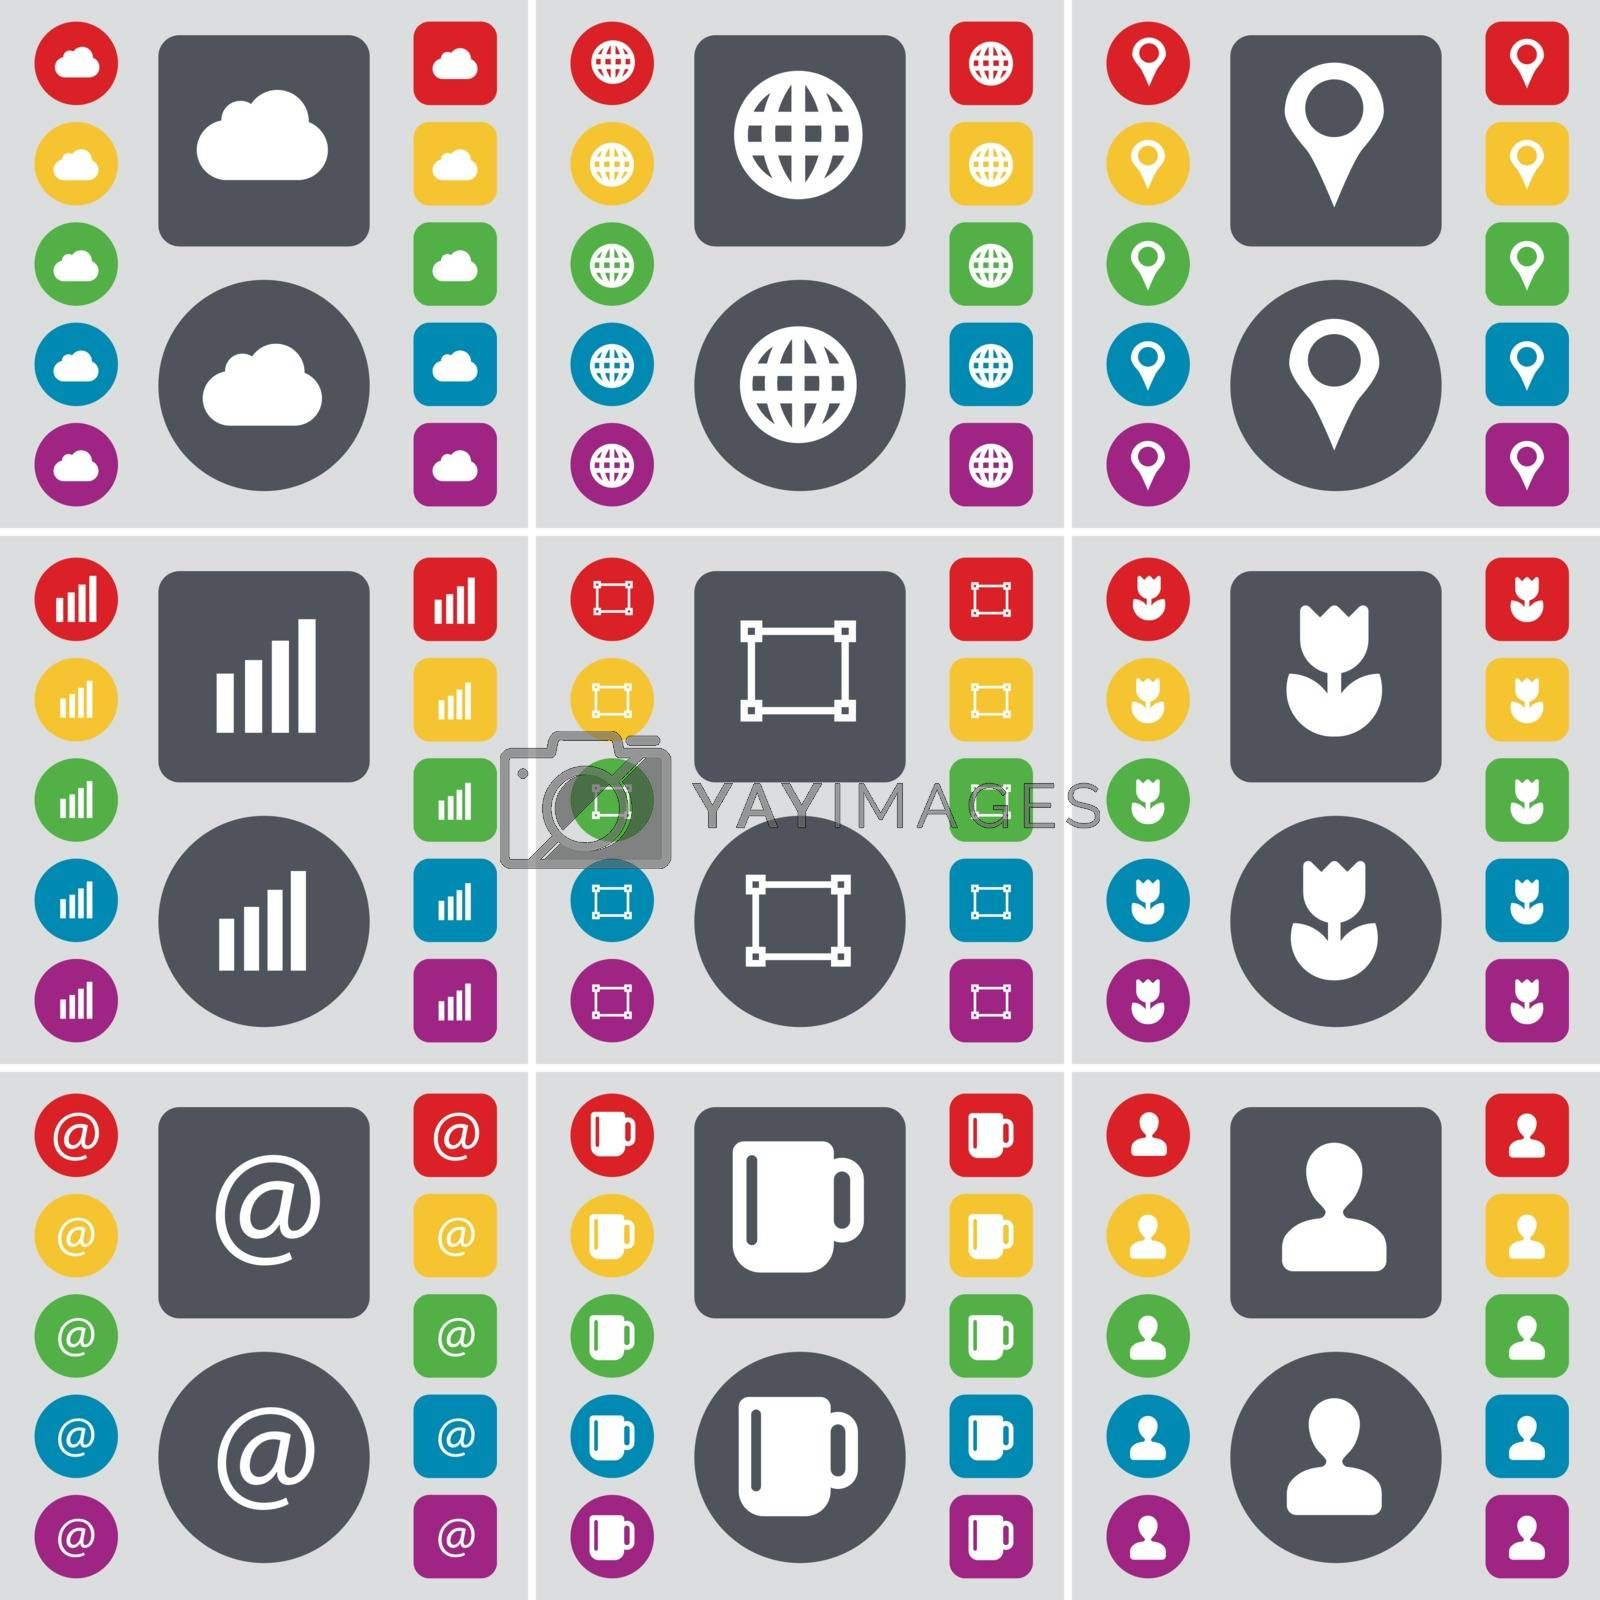 Royalty free image of Cloud, Globe, Checkpoint, Diagram, Frame, Flower, Mail, Cup, Avatar icon symbol. A large set of flat, colored buttons for your design. Vector by serhii_lohvyniuk